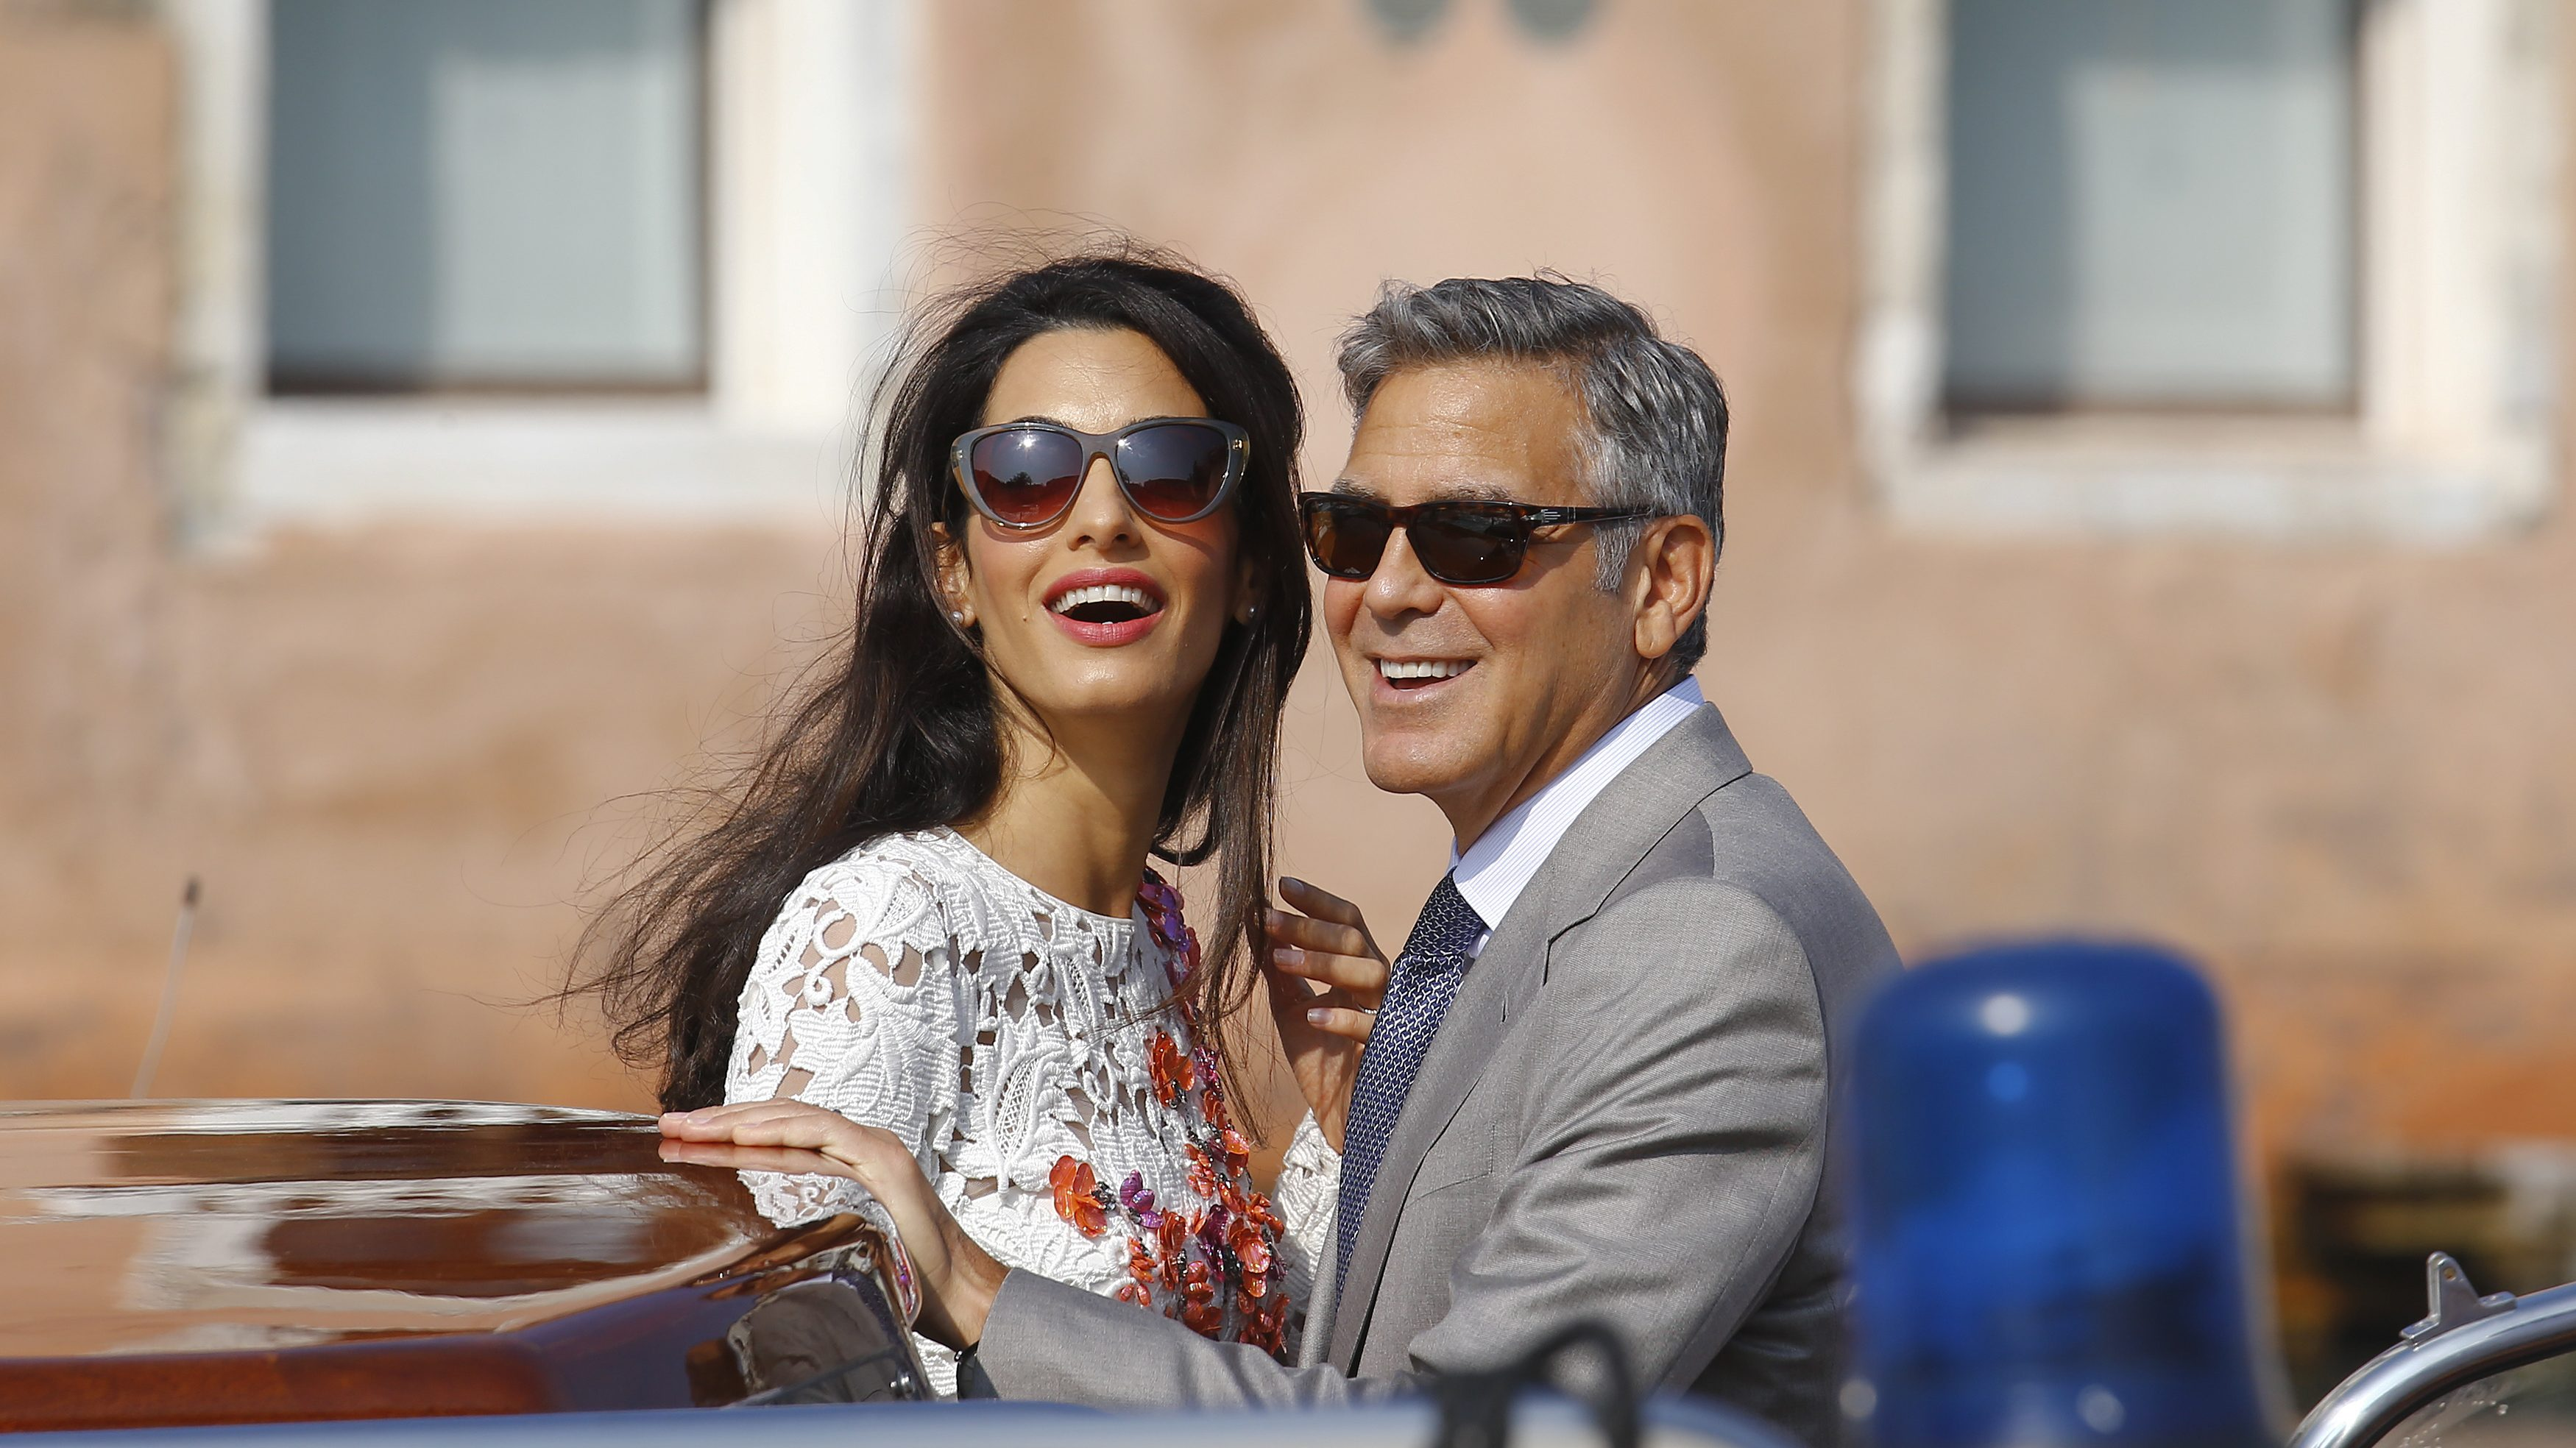 U.S. actor George Clooney and his wife Amal Alamuddin